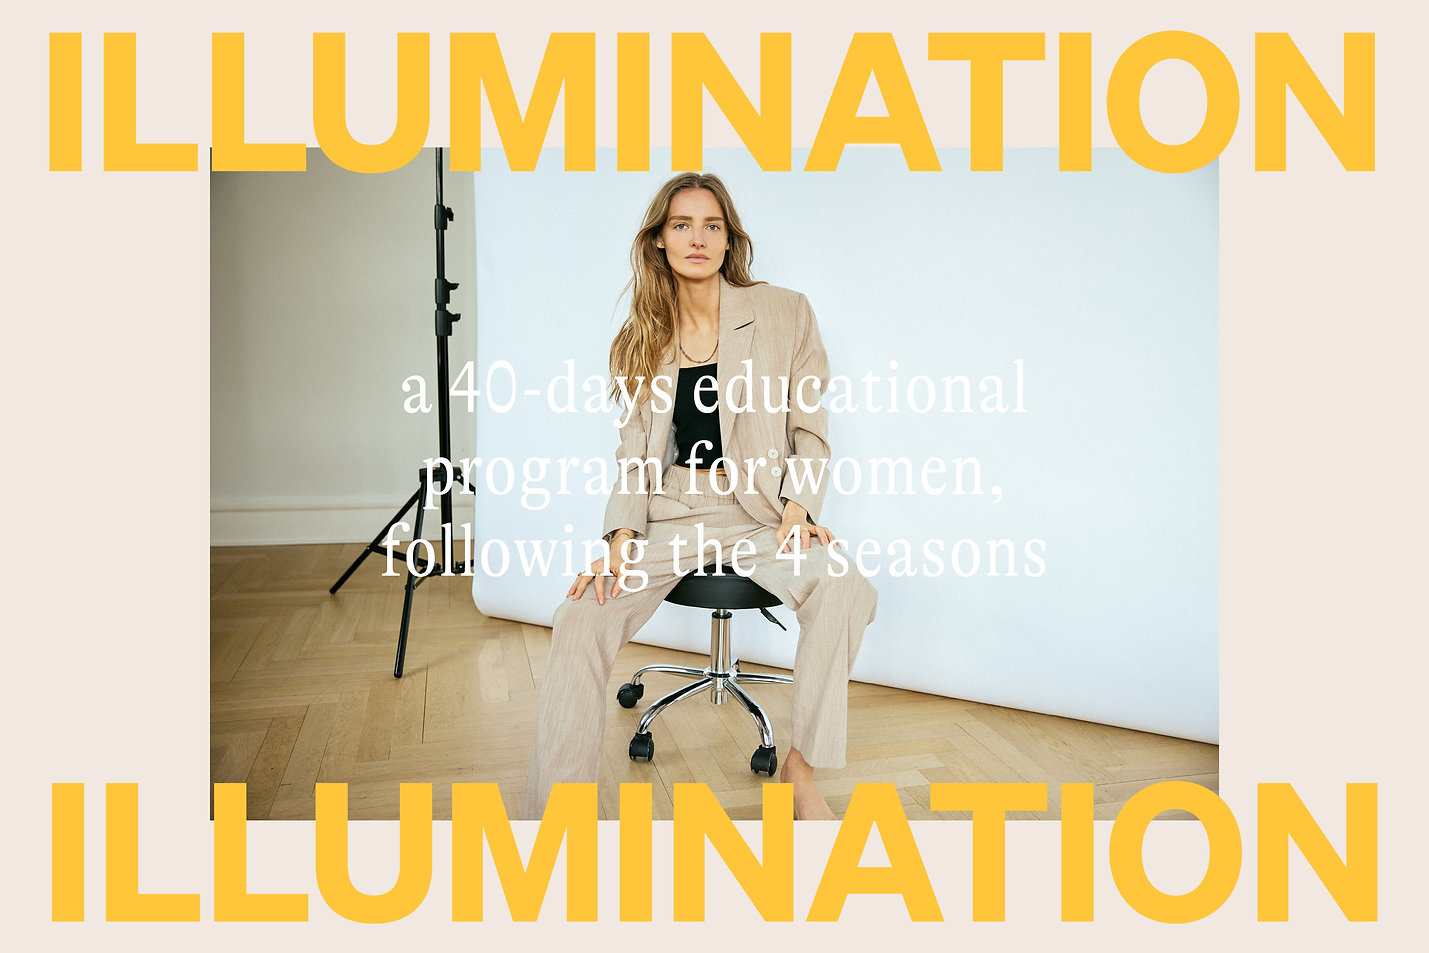 Illumination_web_02.jpg